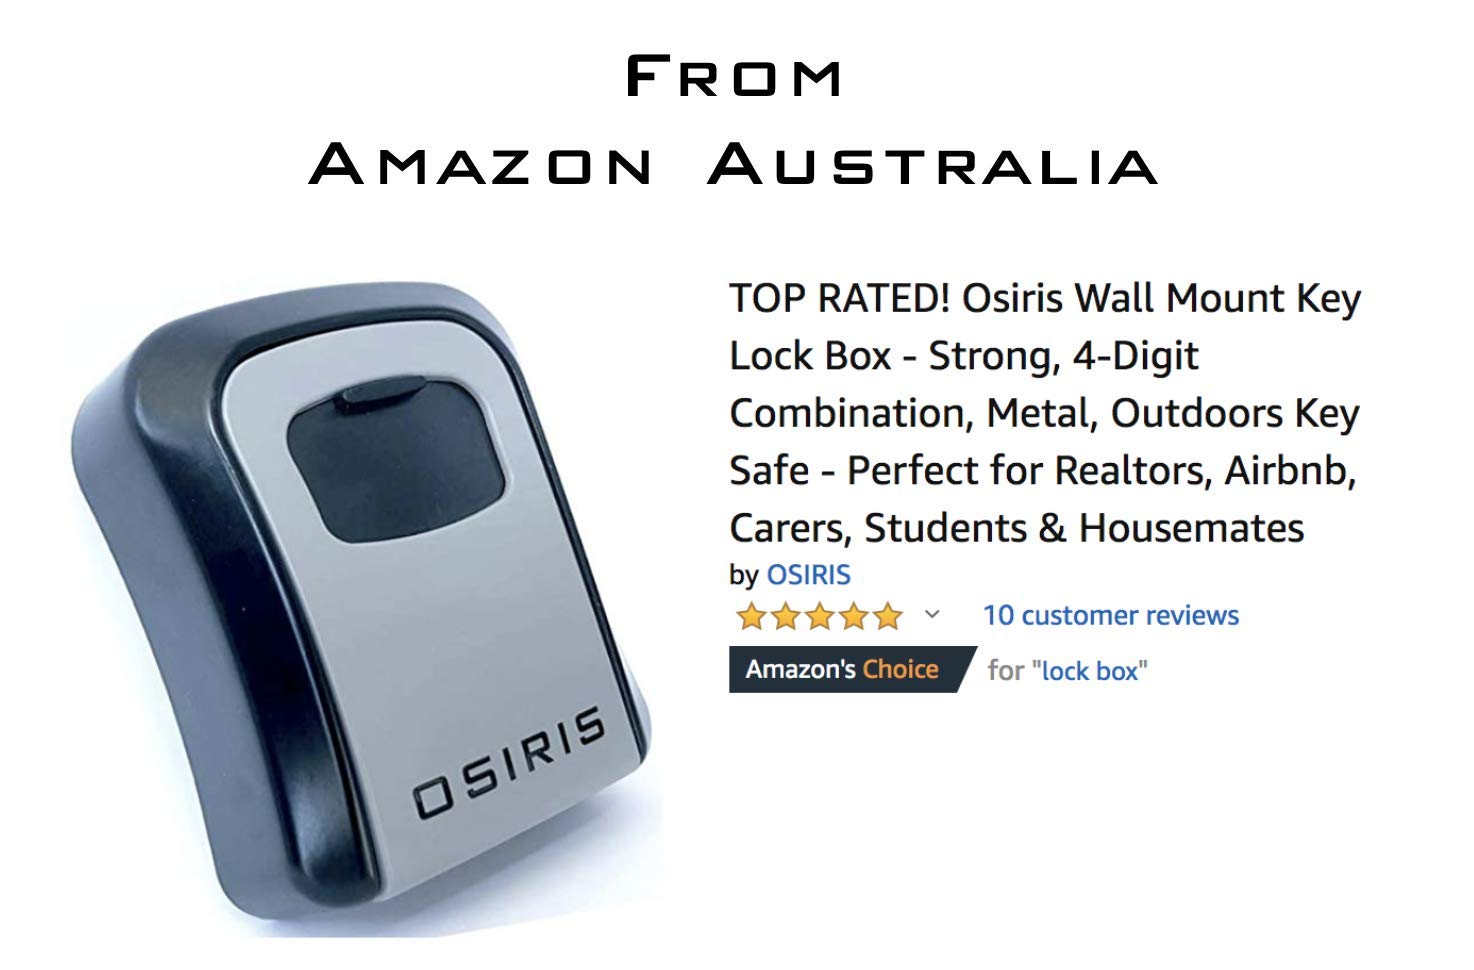 [LAUNCH SALE] Osiris Wall Mount Key LockBox - Strong, 4-Digit Combination,  Metal, Outdoors Key Safe - Perfect for Realtors, Airbnb, Carers, Students &